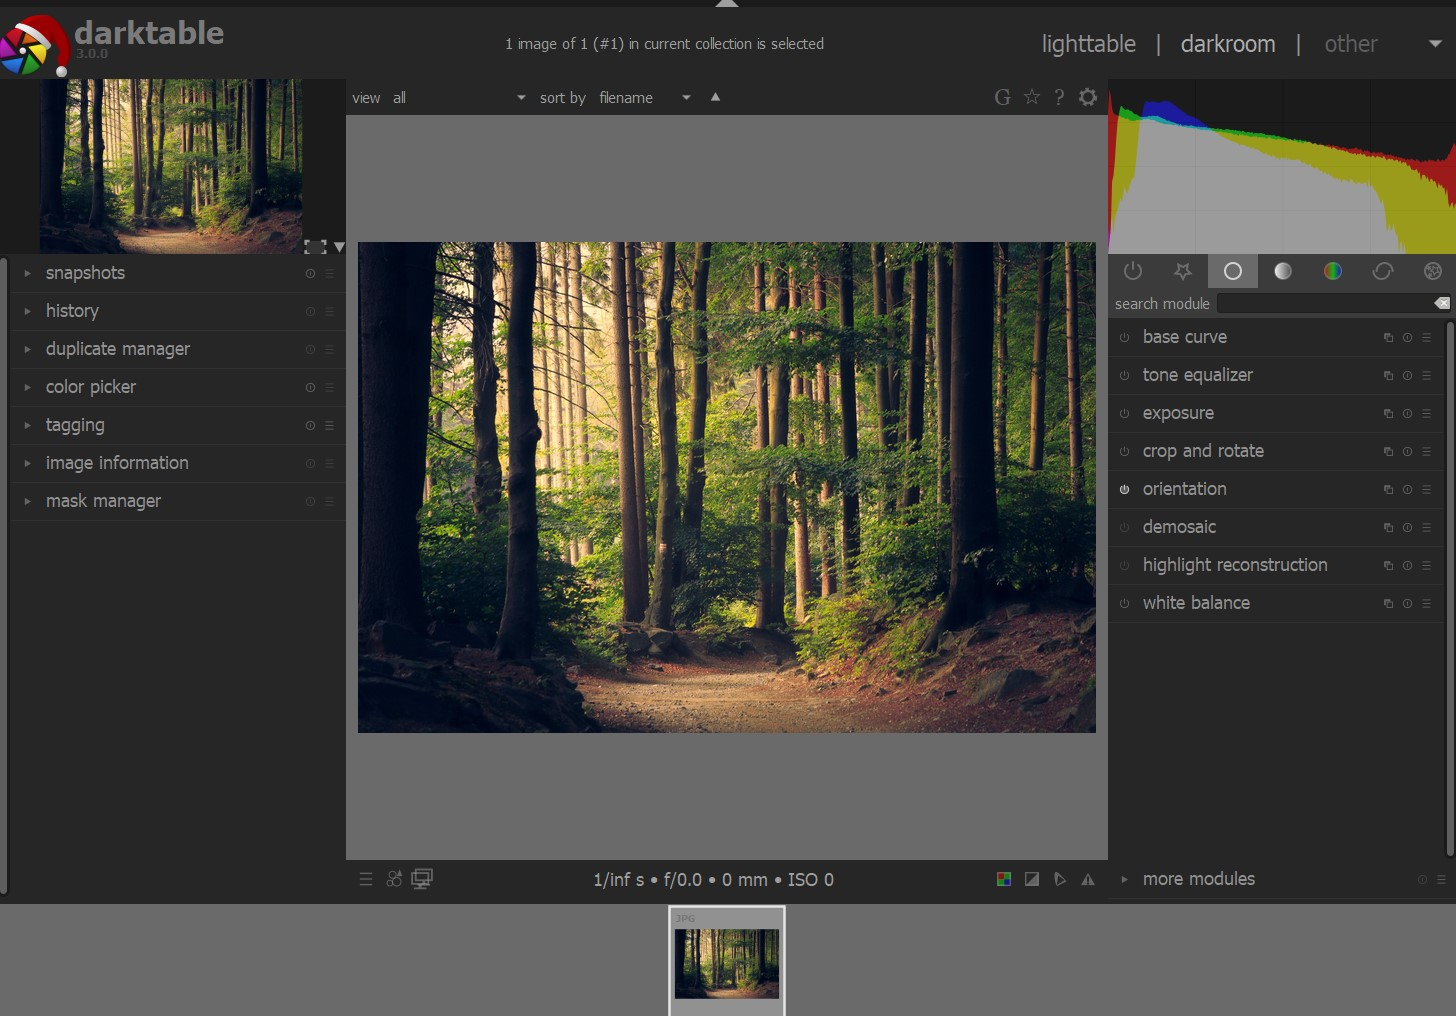 Darktable 3 0 Released With New Features Bug Fixes And Major Gui Update Digital Photography Review